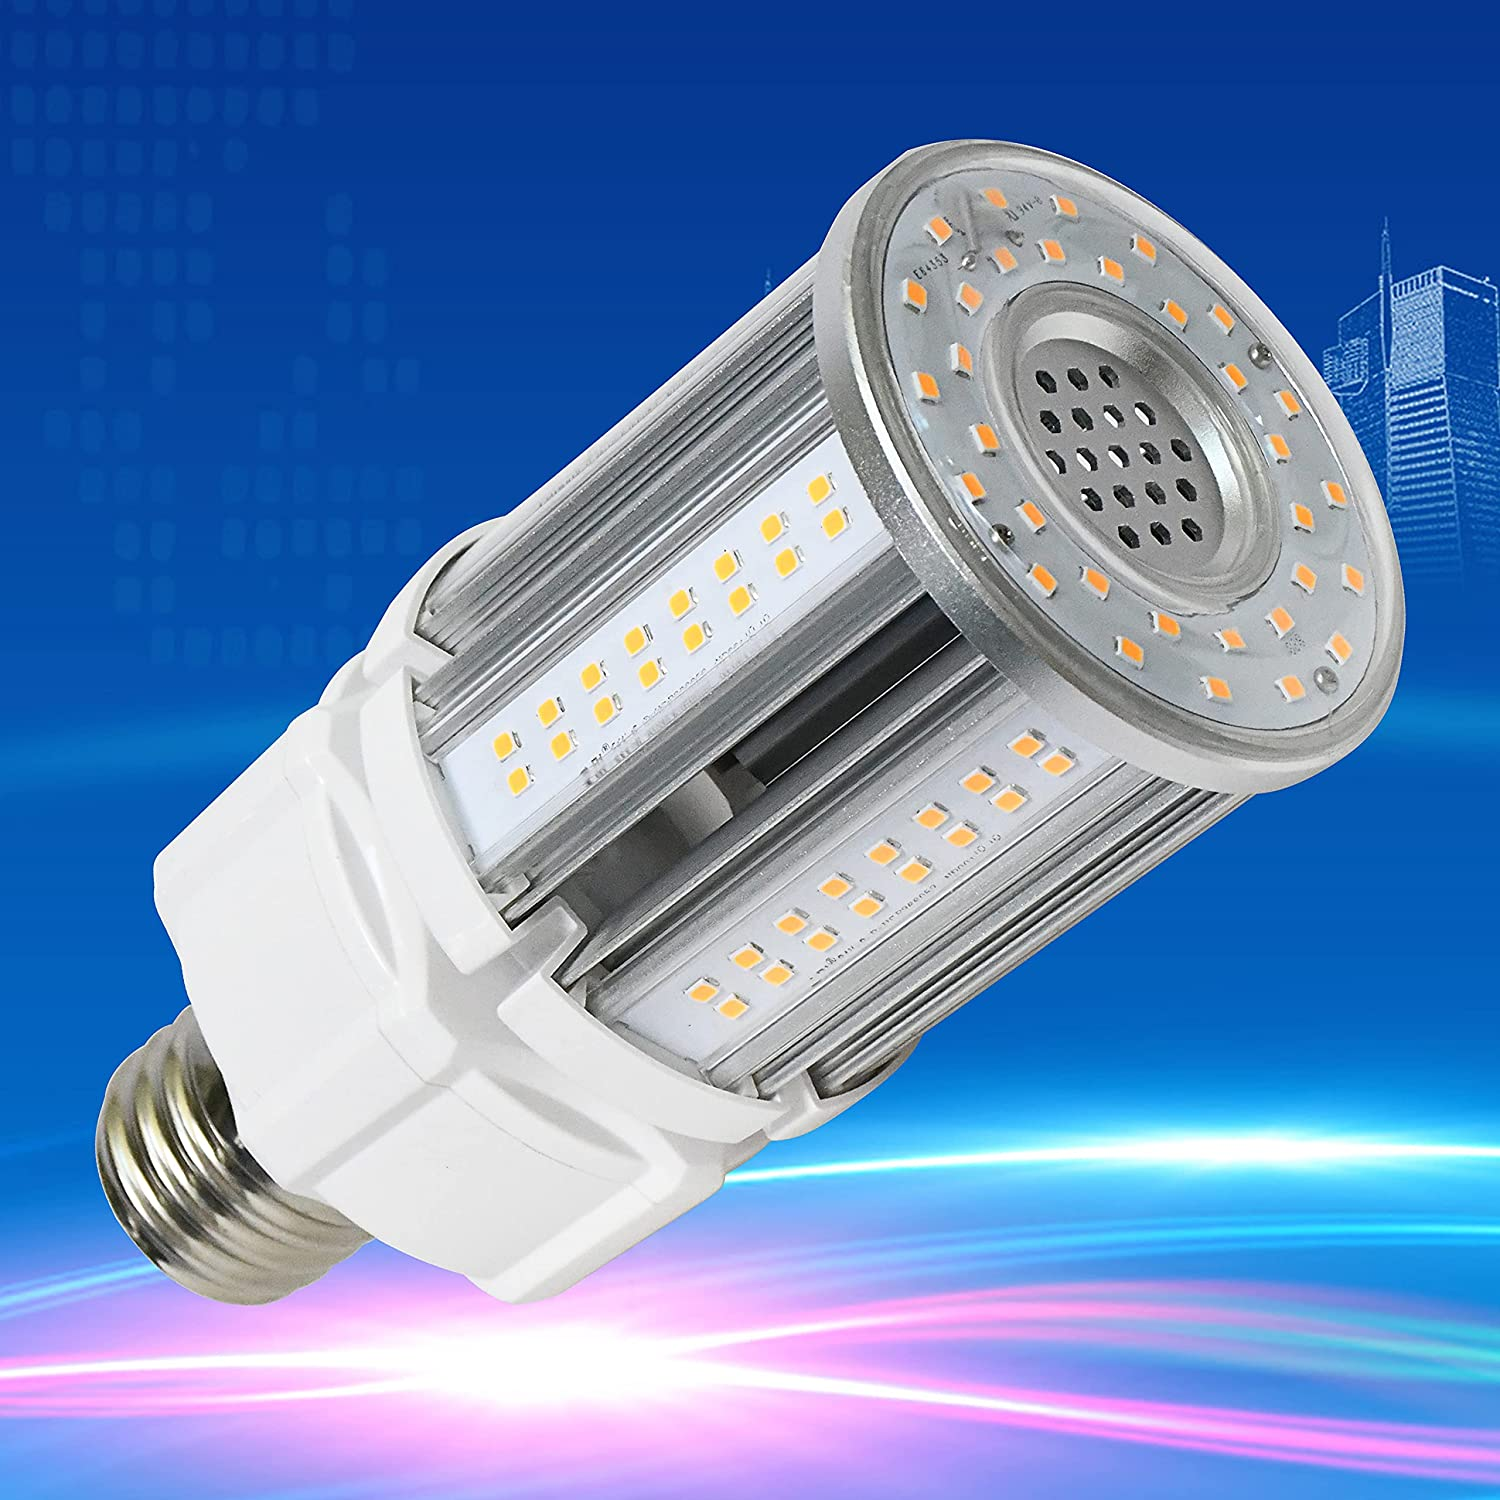 Challenge the lowest price of Japan ☆ Lawind IP64 Waterproof Popular brand in the world LED Corn Bulb f 5000K Light 36W